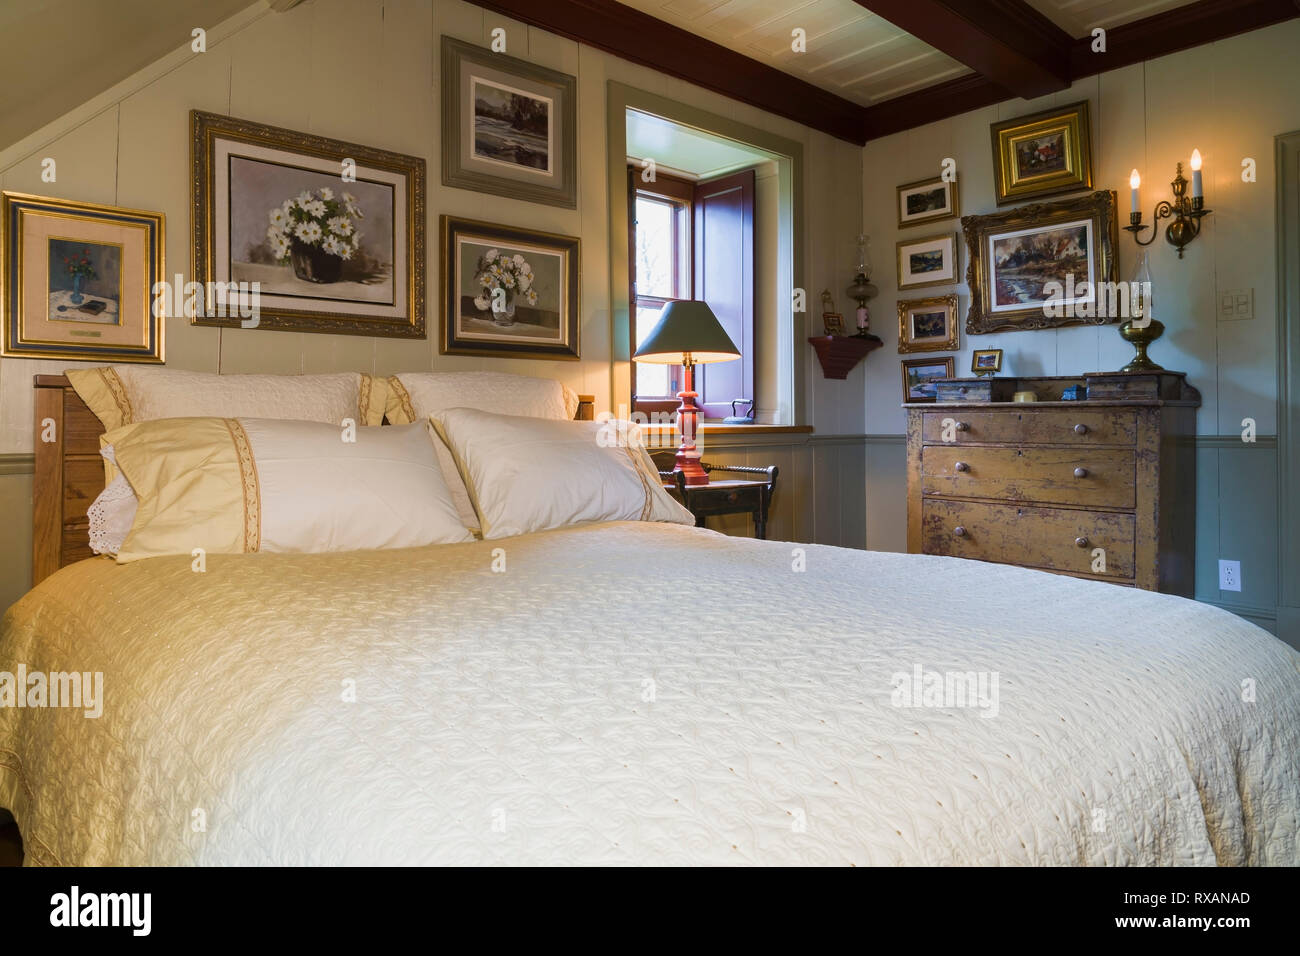 Queen size bed with antique wooden headboard, dresser and ...